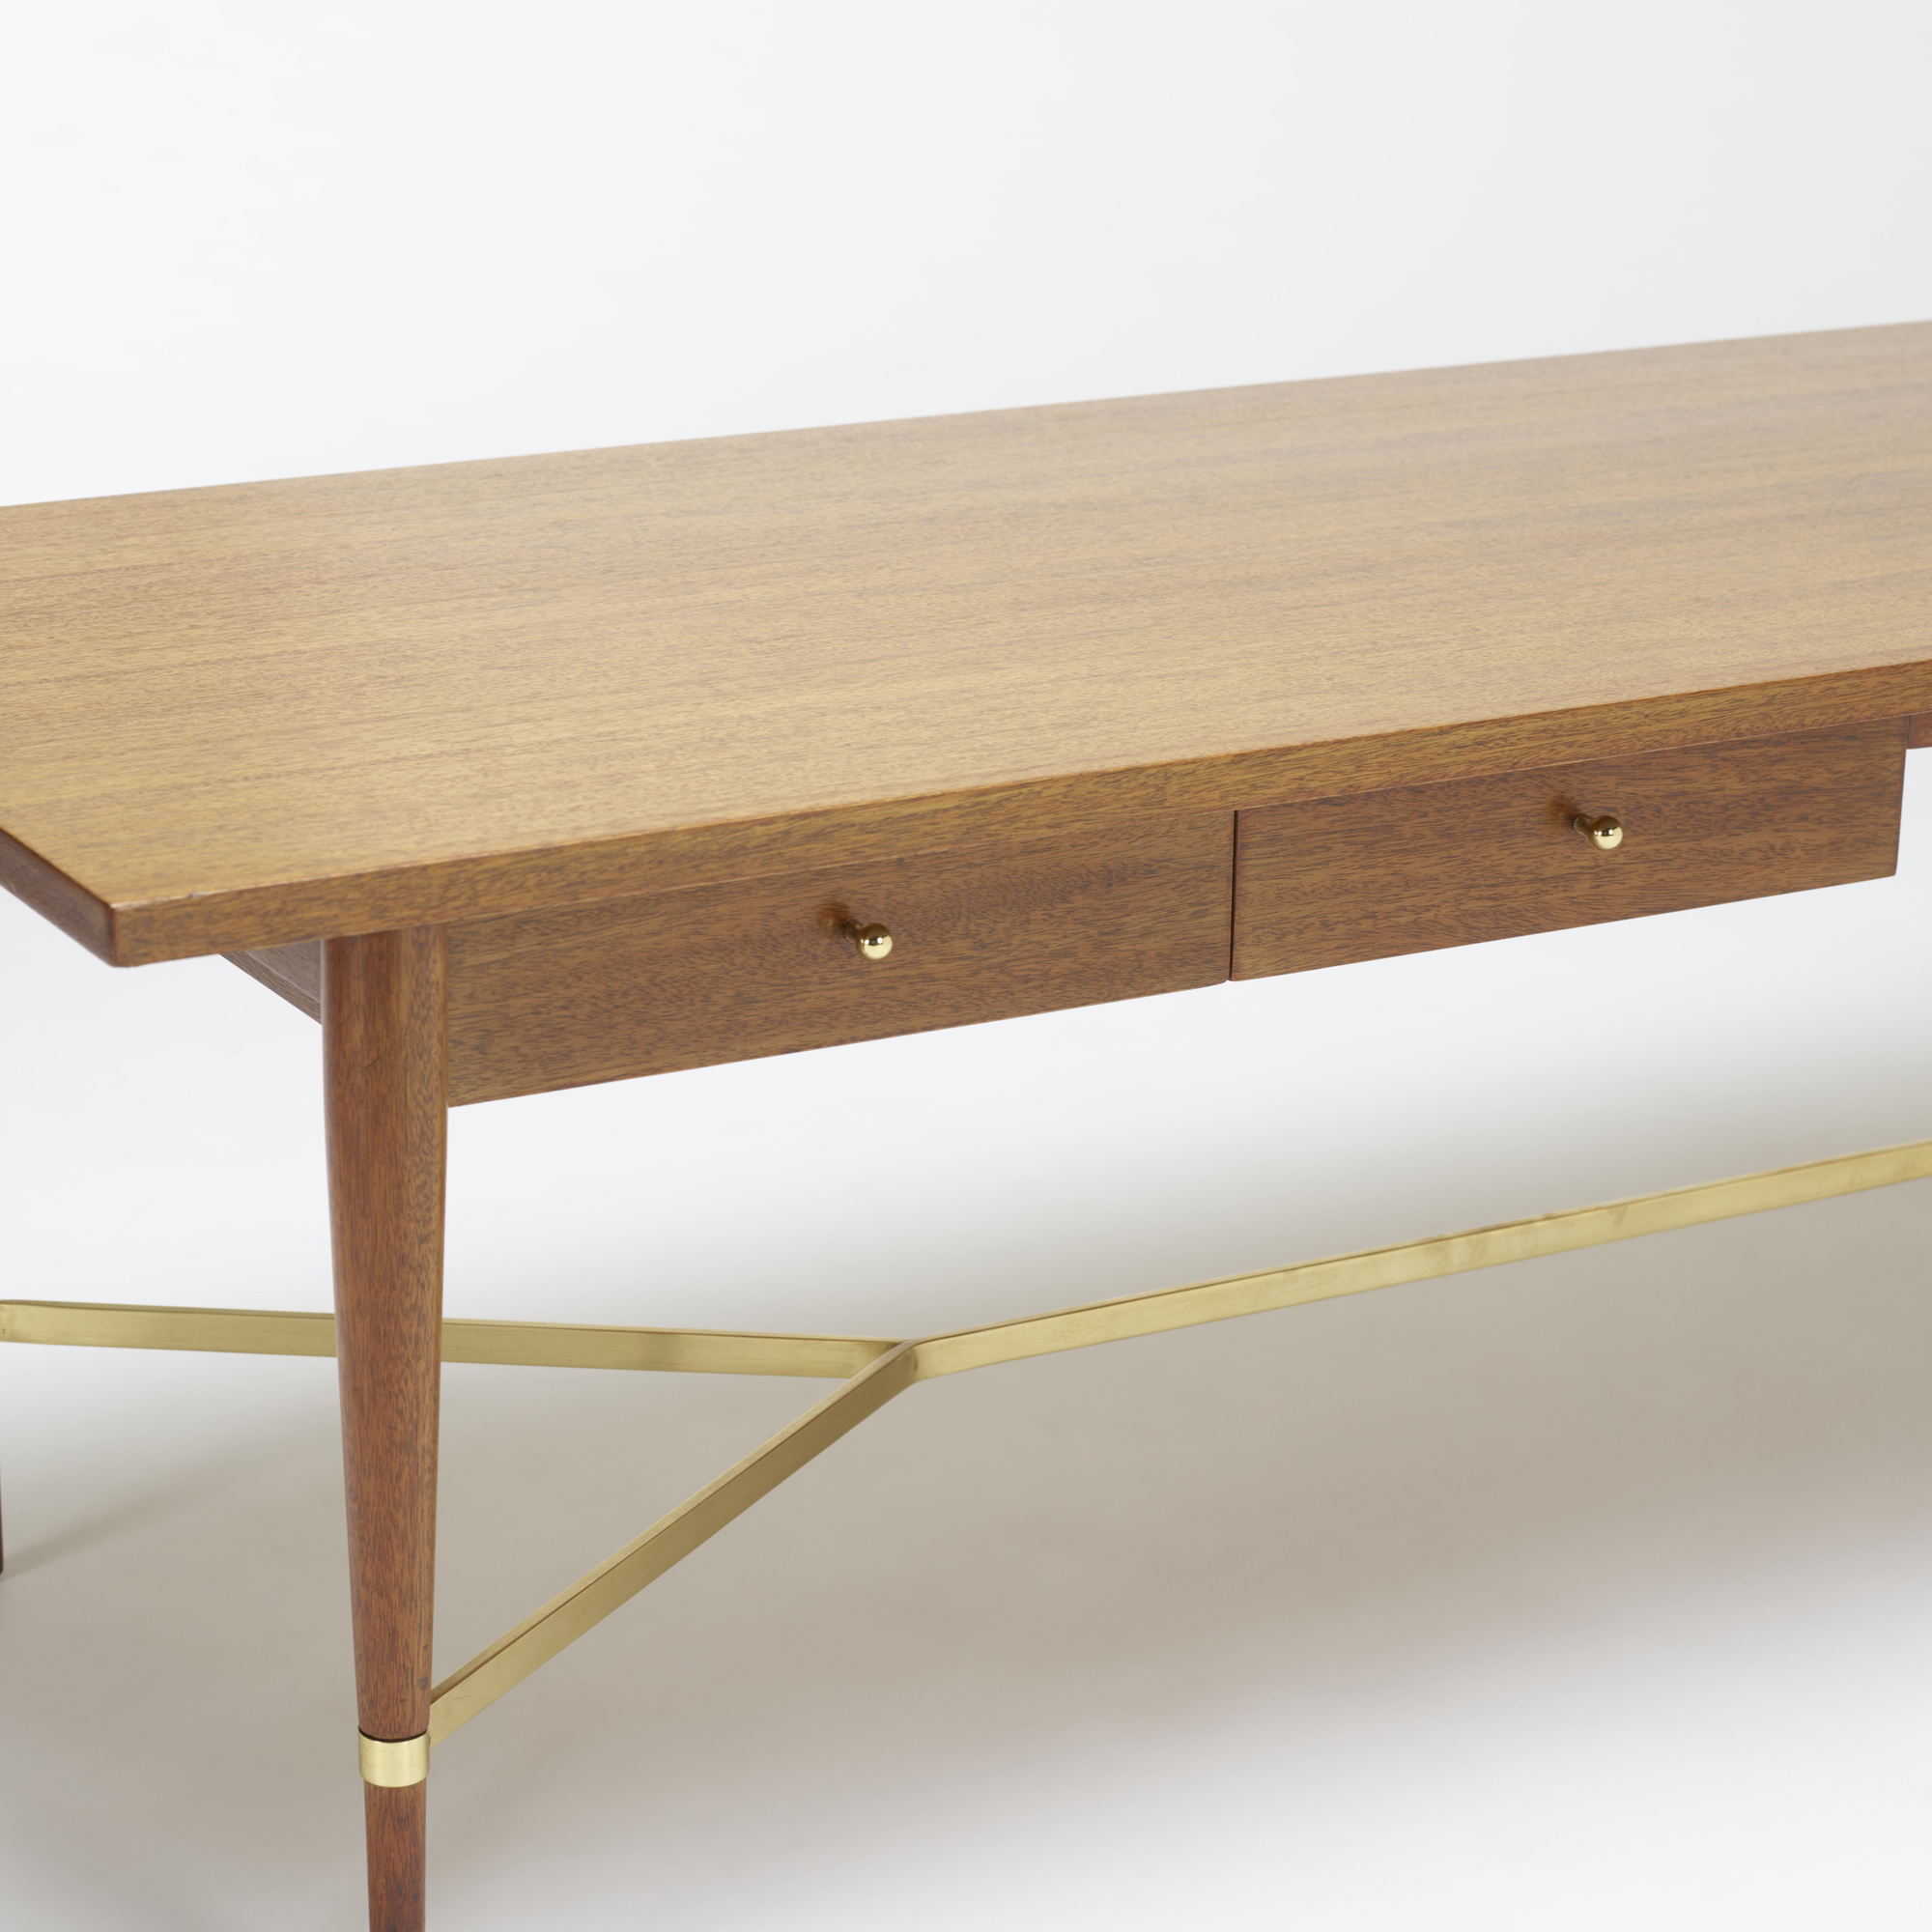 333: Paul McCobb / Connoisseur Collection coffee table (2 of 2)